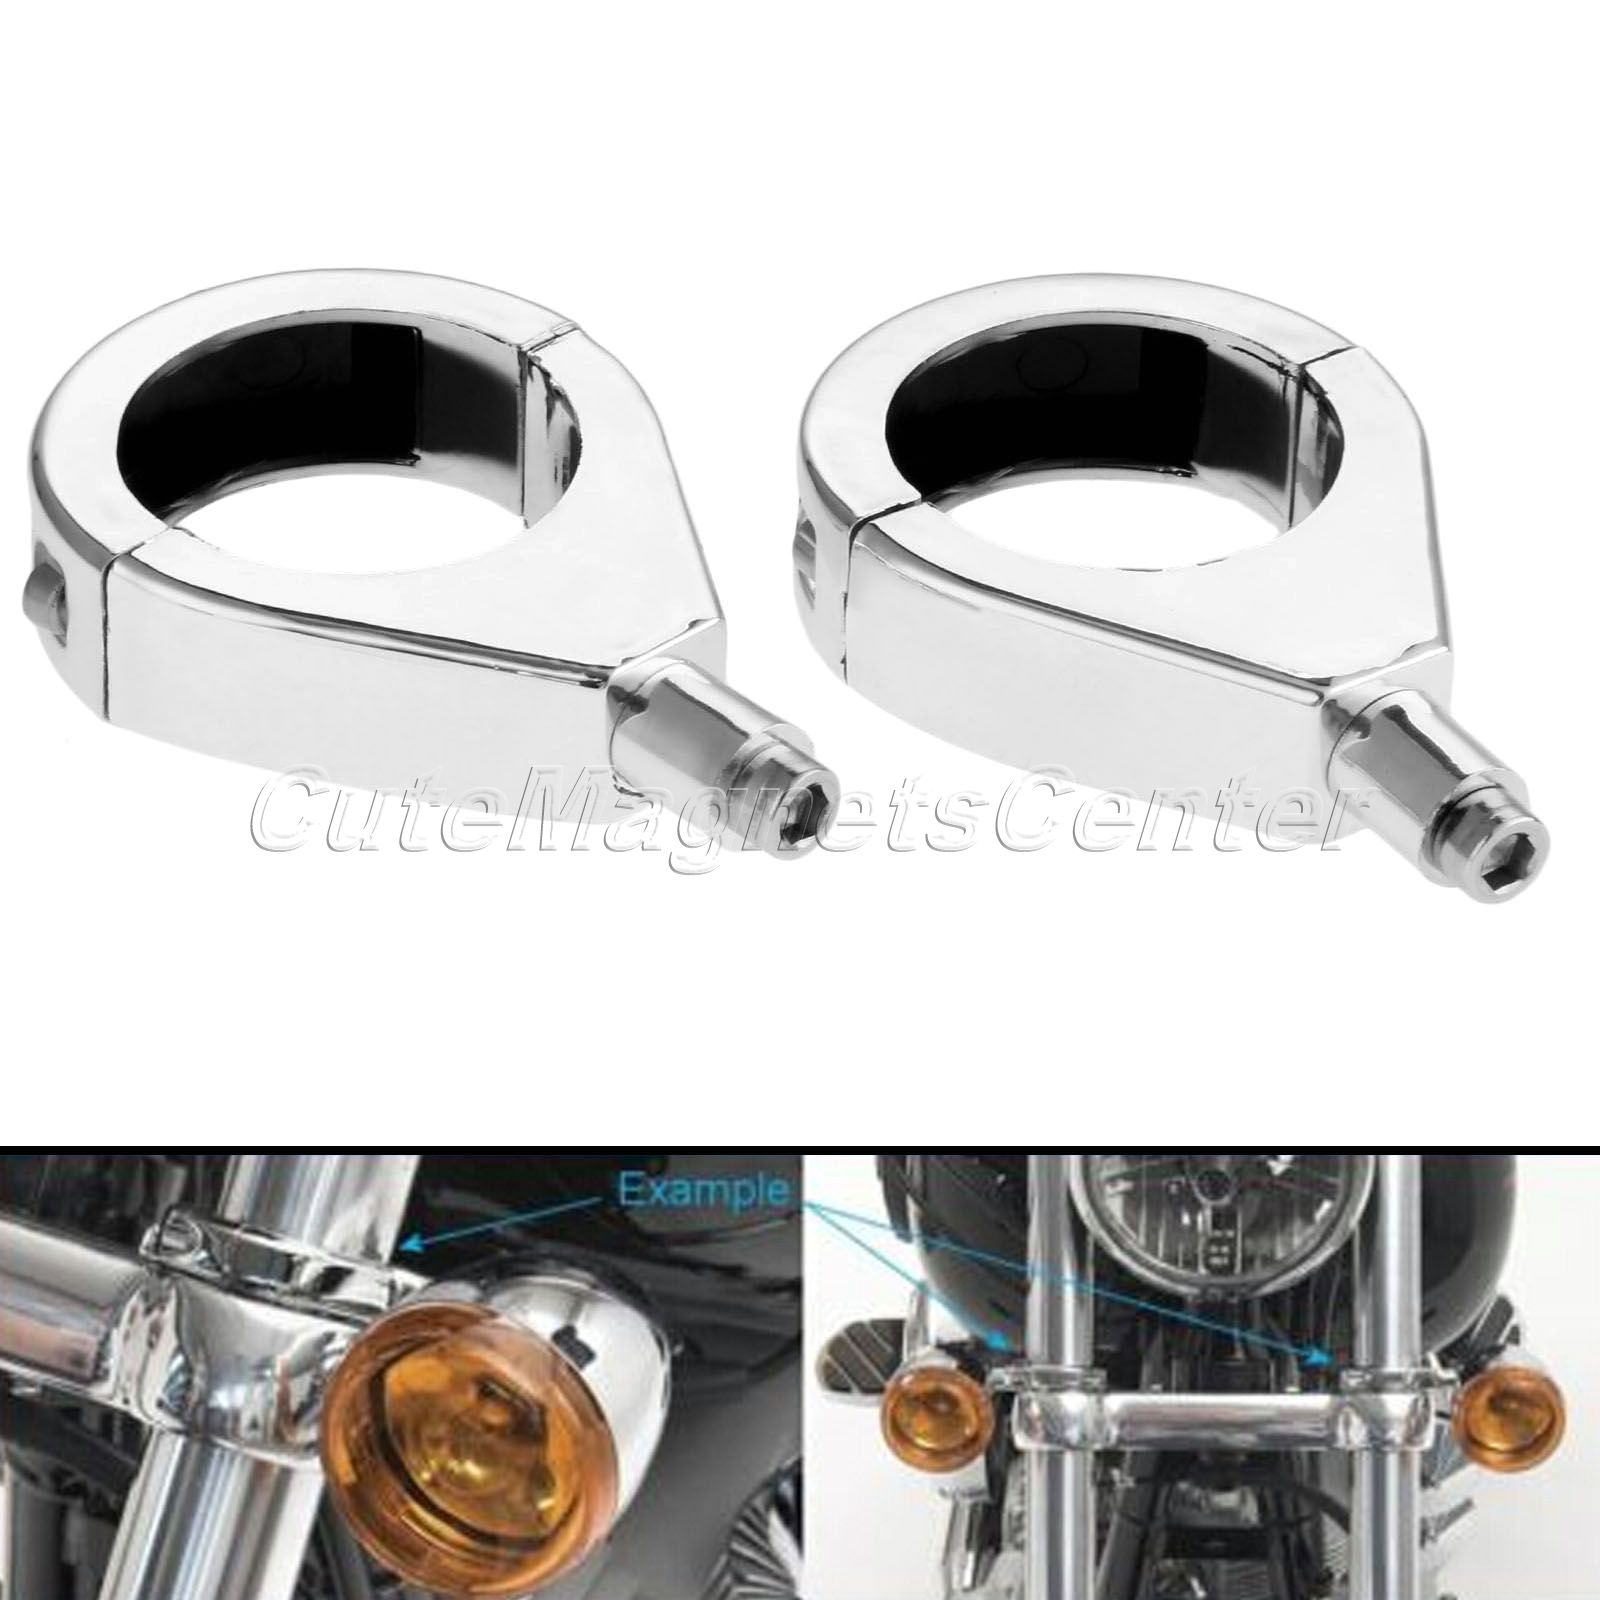 Mtsooning 2 pcs 41mm Moto Clignotants Lumières Indicateur Pinces à Fourches Relocation Mount Support pour Harley Davidson Softail